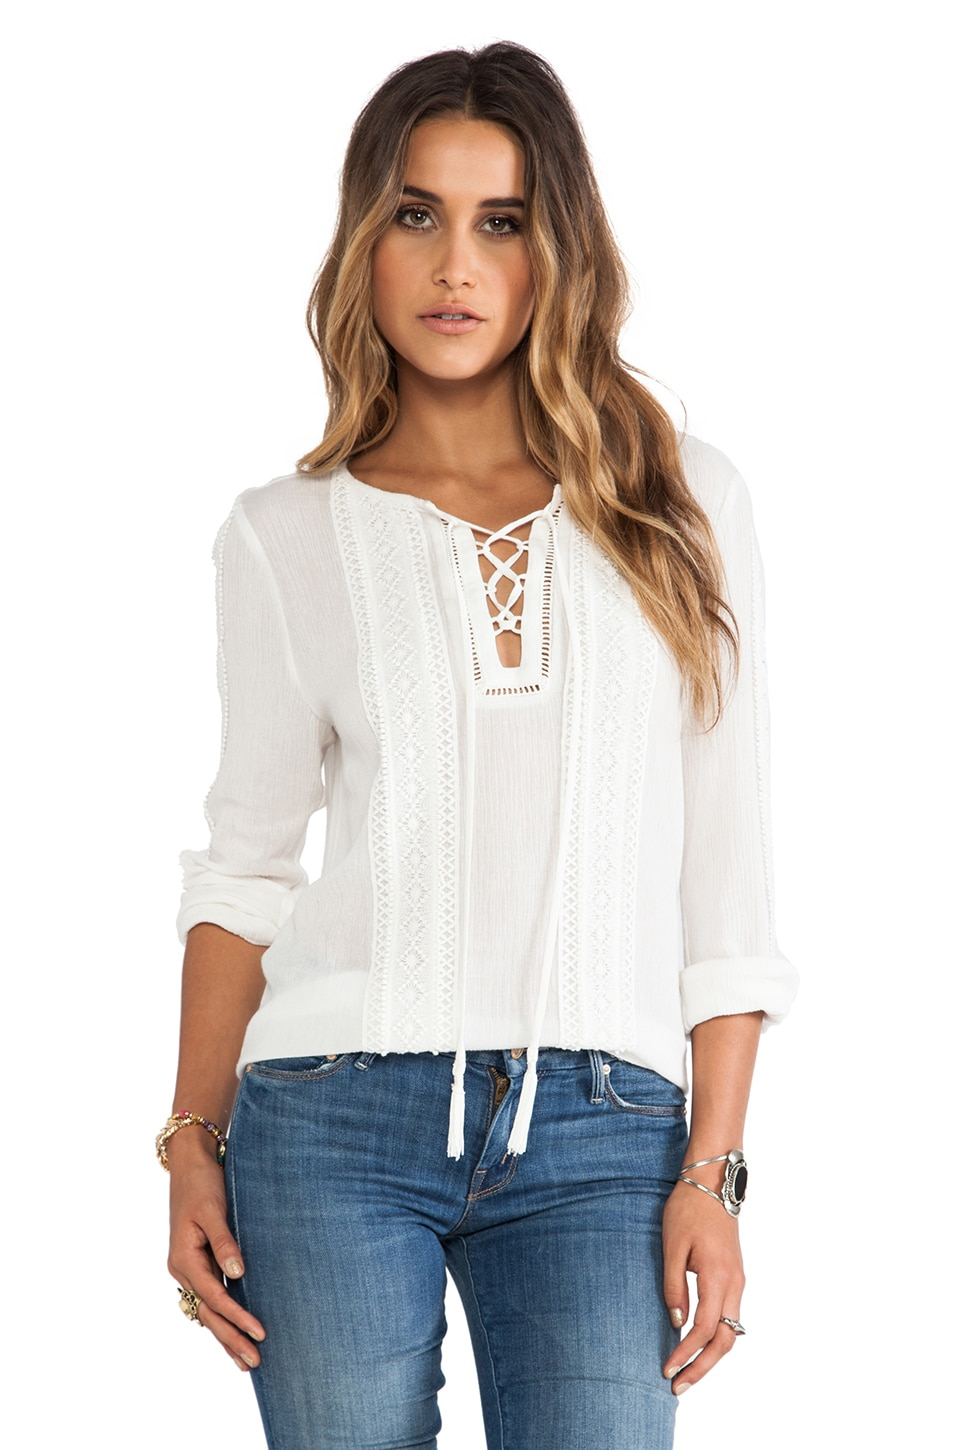 Greylin Roseli Lace Trim Blouse in White